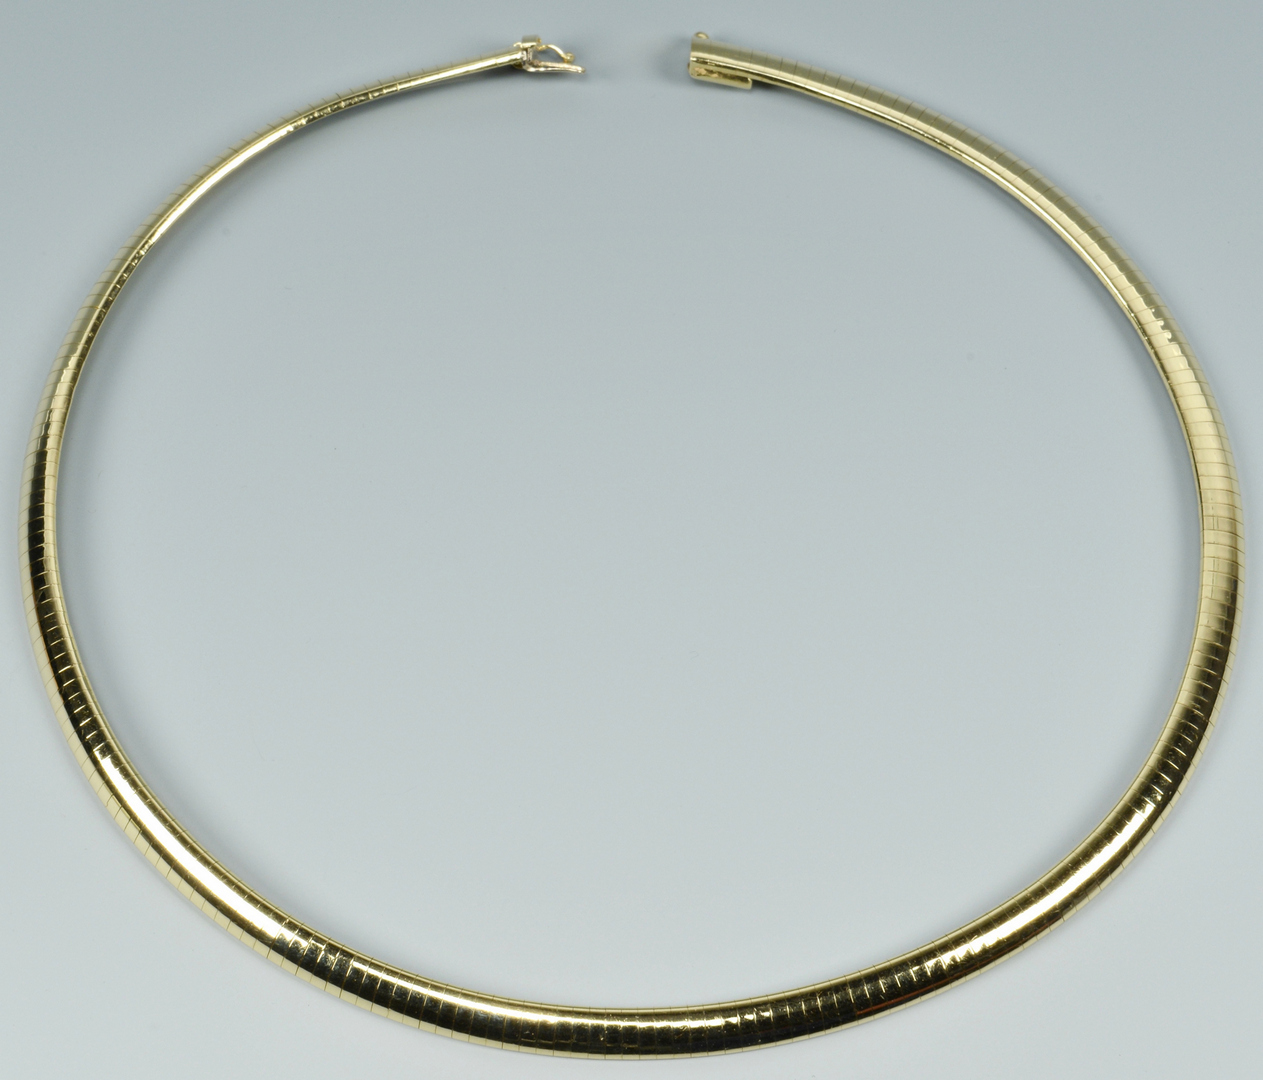 Lot 3088064: 14k Yellow Gold Omega Collar Necklace